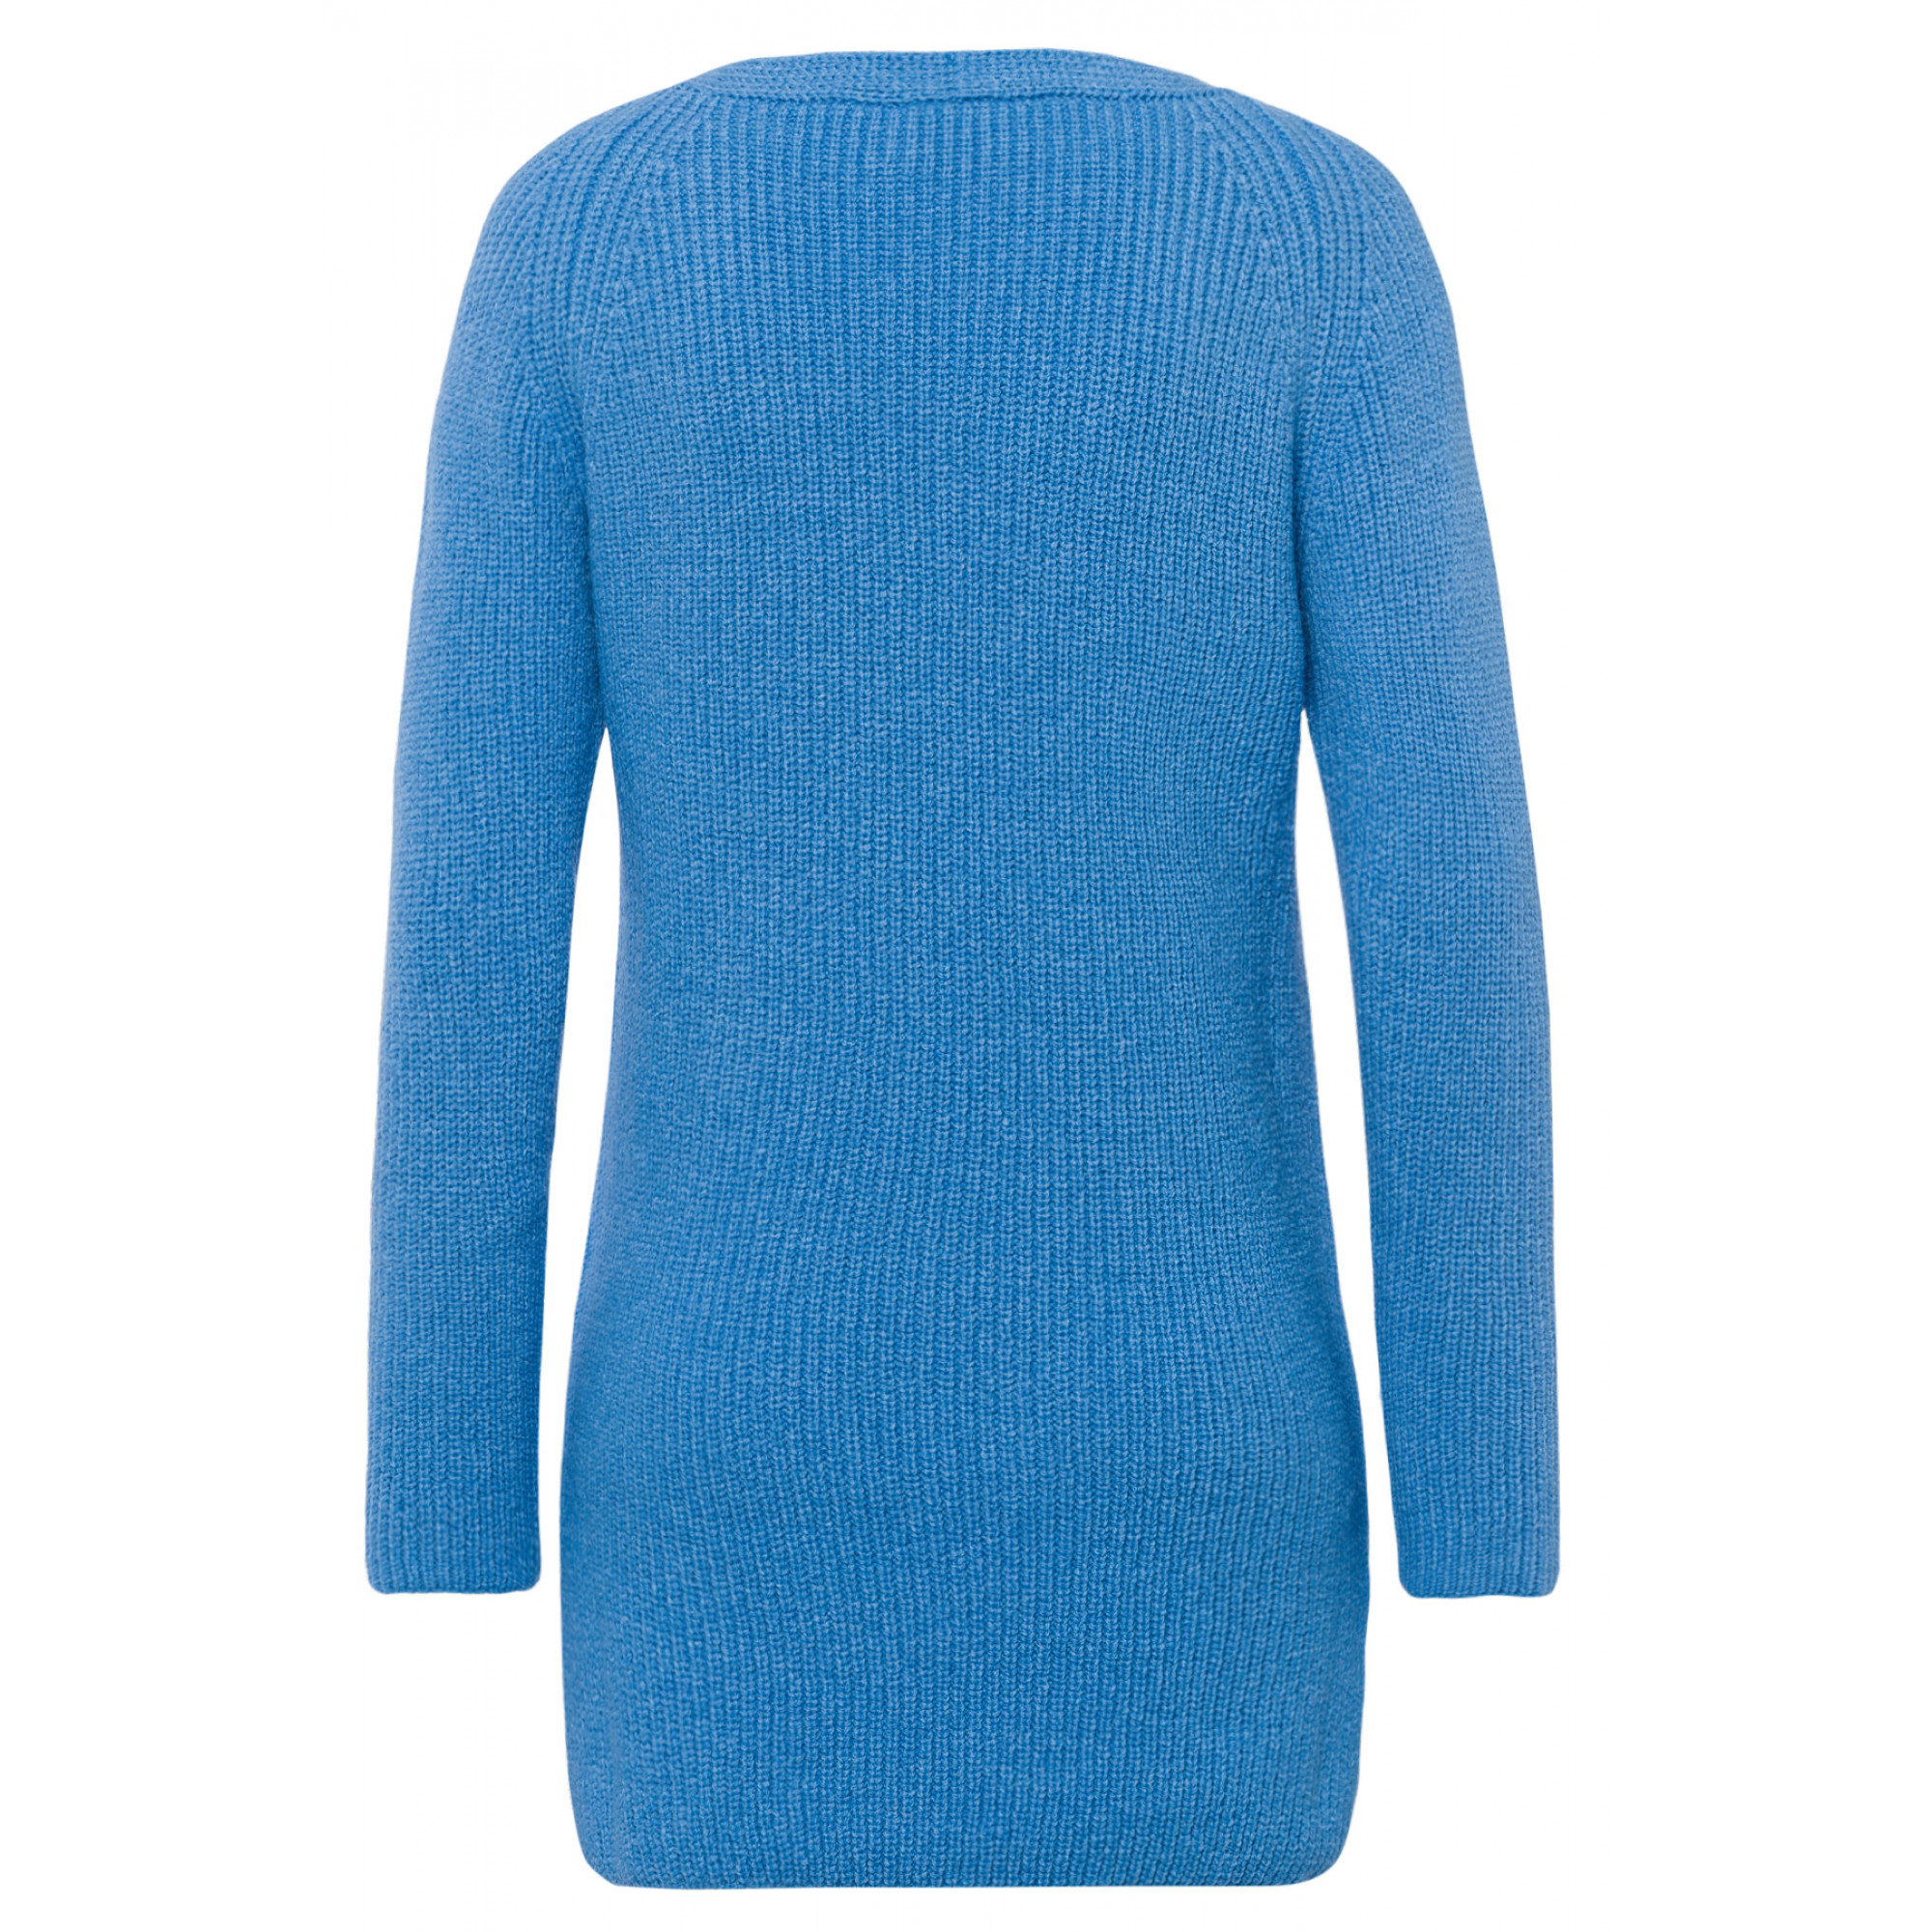 Long-Pullover, Rippe, winter blue 91641088-0329 2